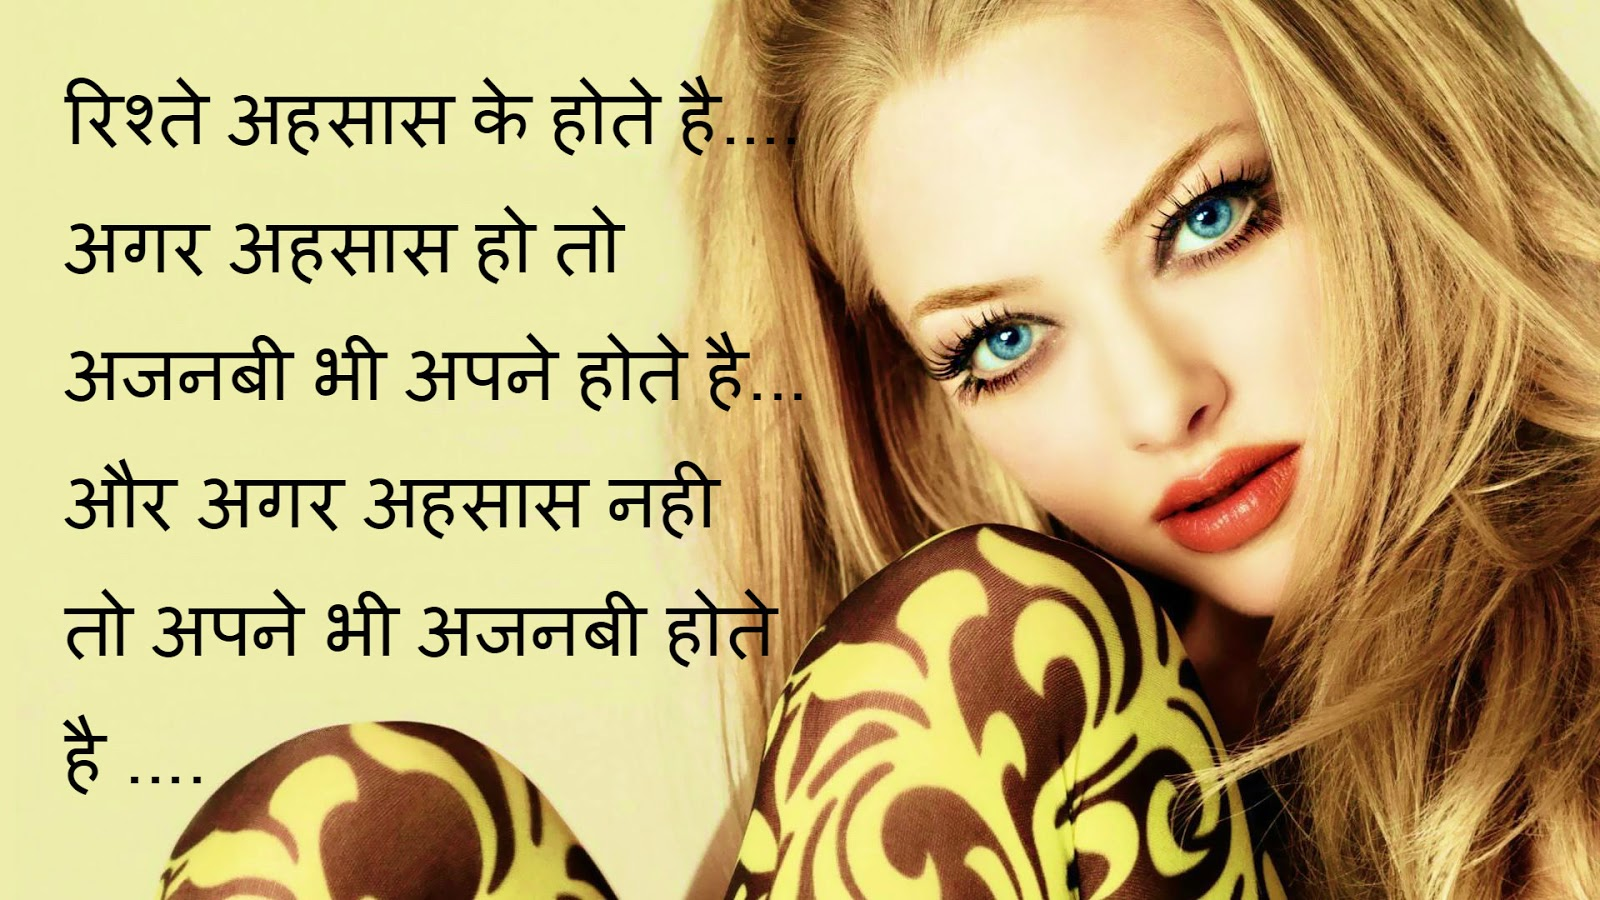 Wallpaper download love shayri - New Hindi Romantic Shayari Hindi Shayari Hd Image Download Love Shayari In Hindi For Girlfriend Image Daily Update Hindi Shayari Images Best Facebook